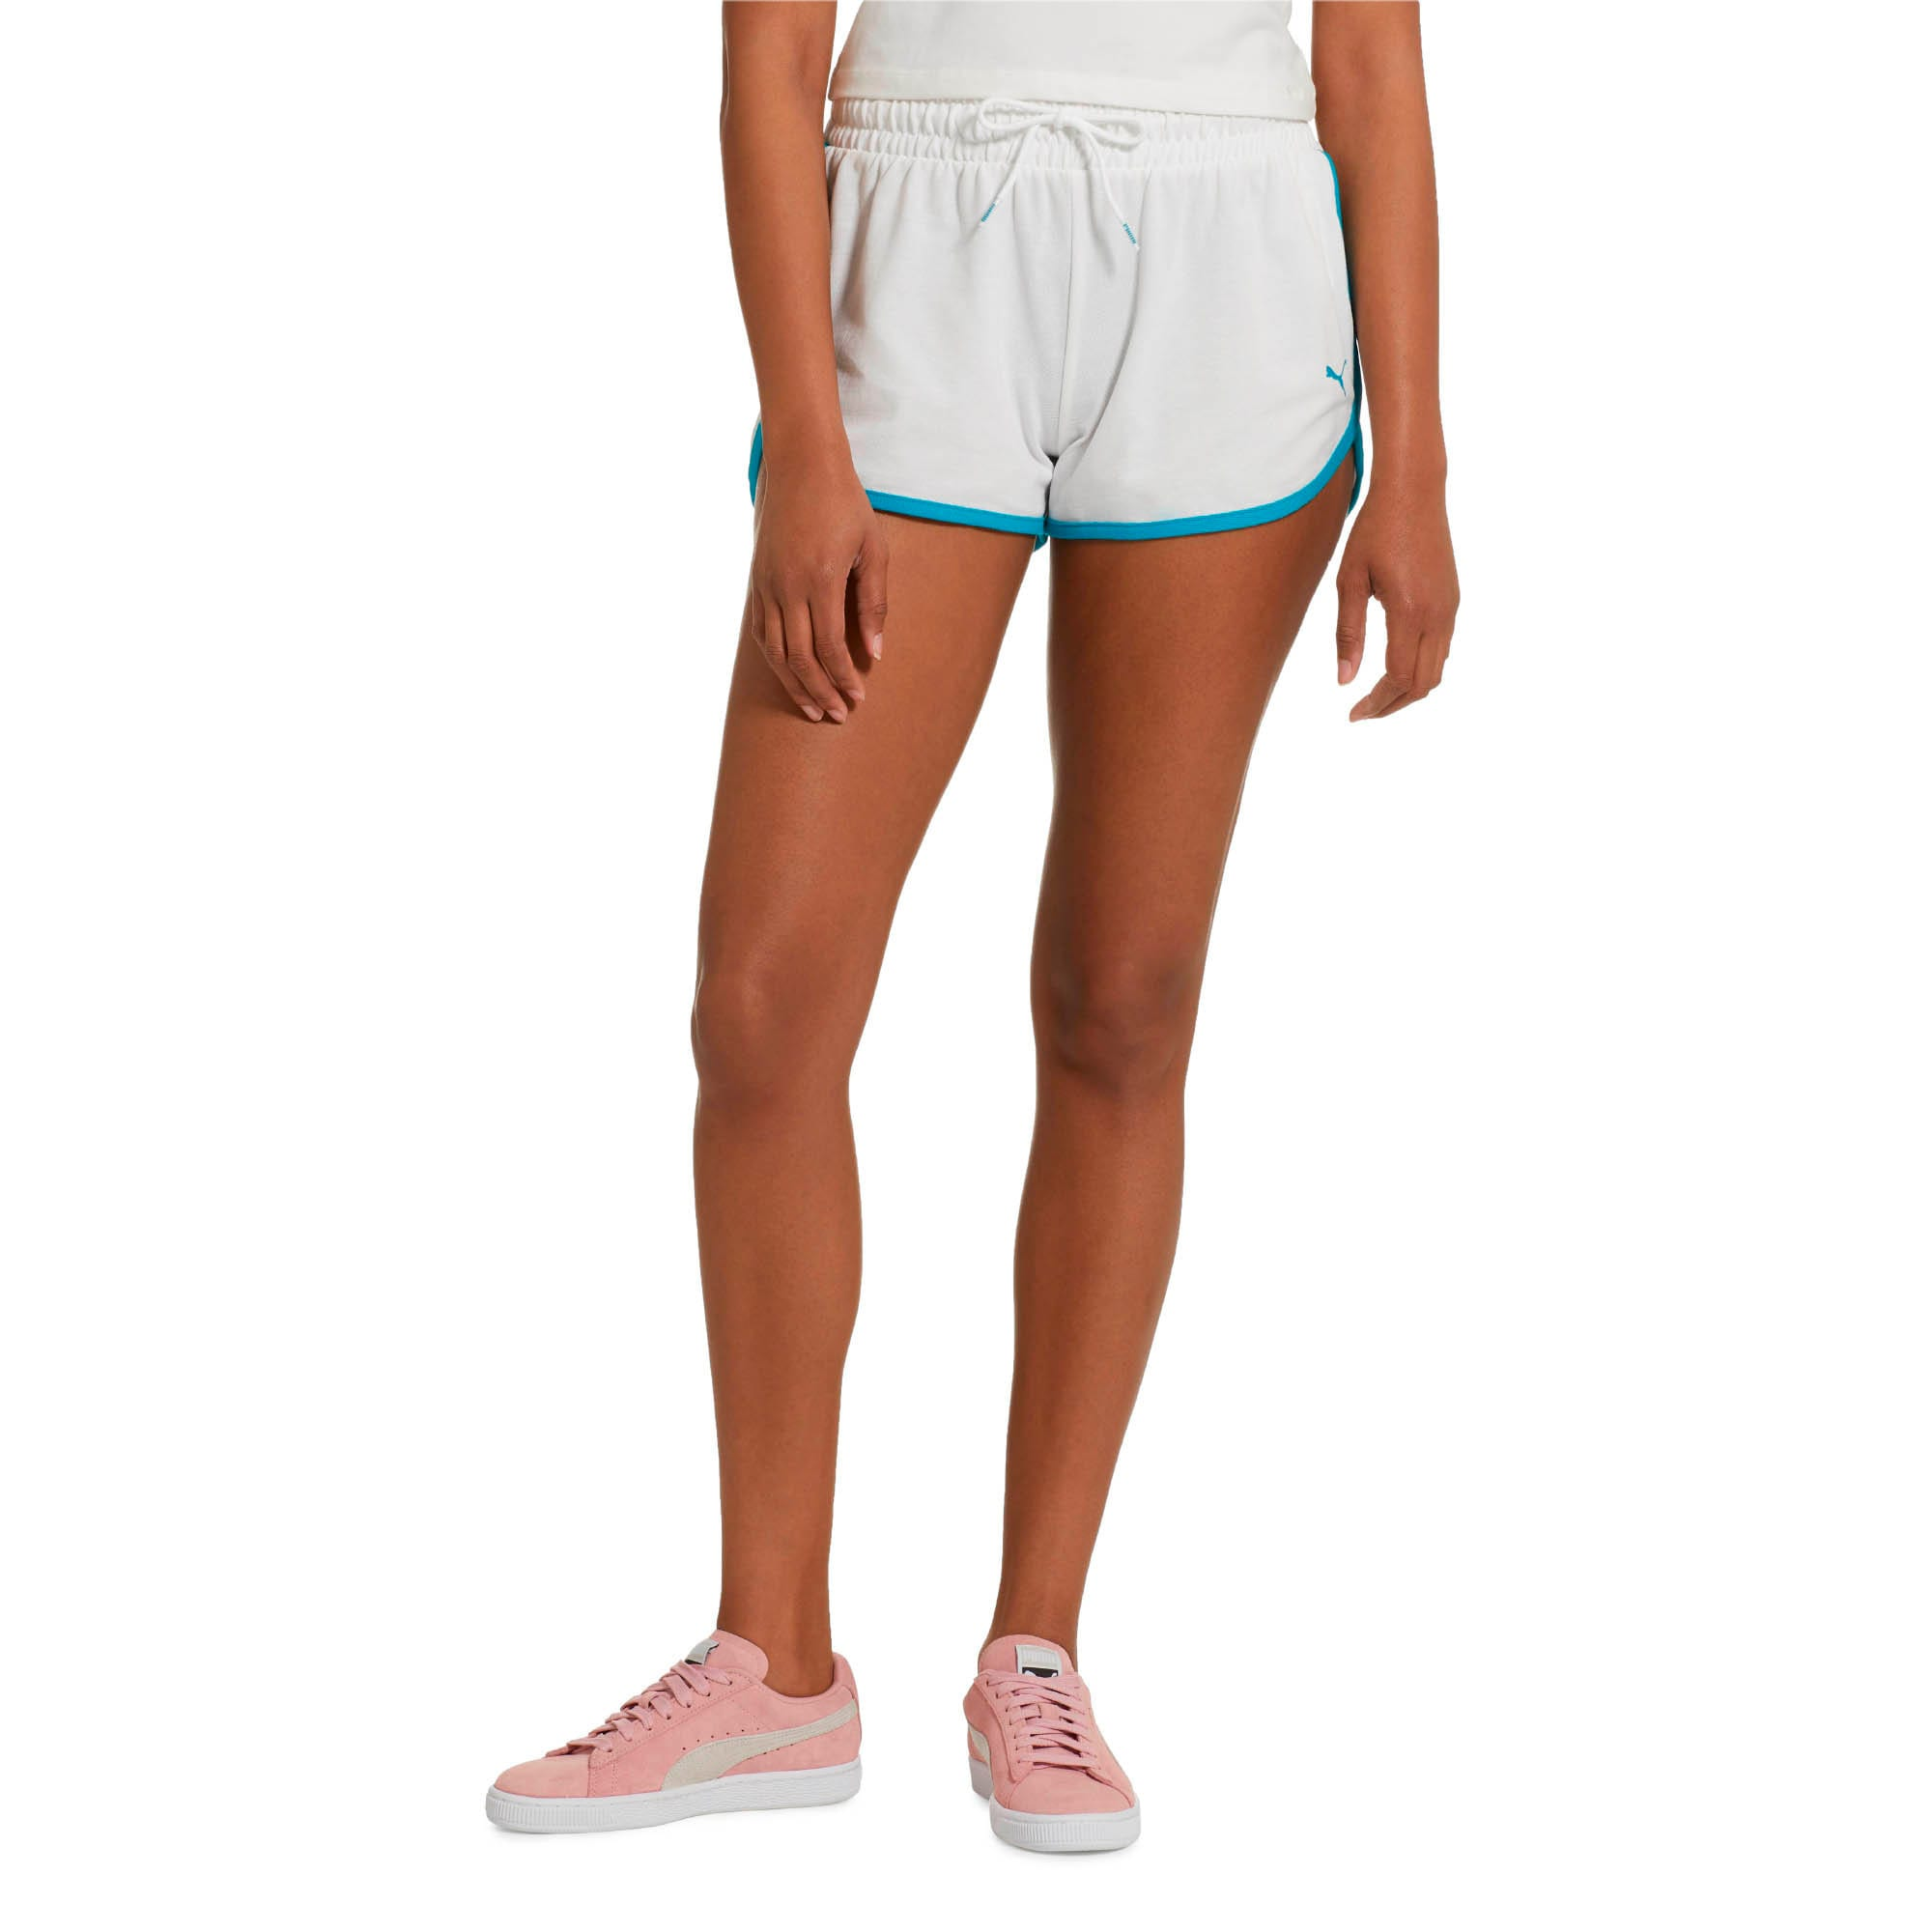 Thumbnail 1 of Women's Summer Shorts, Puma White, medium